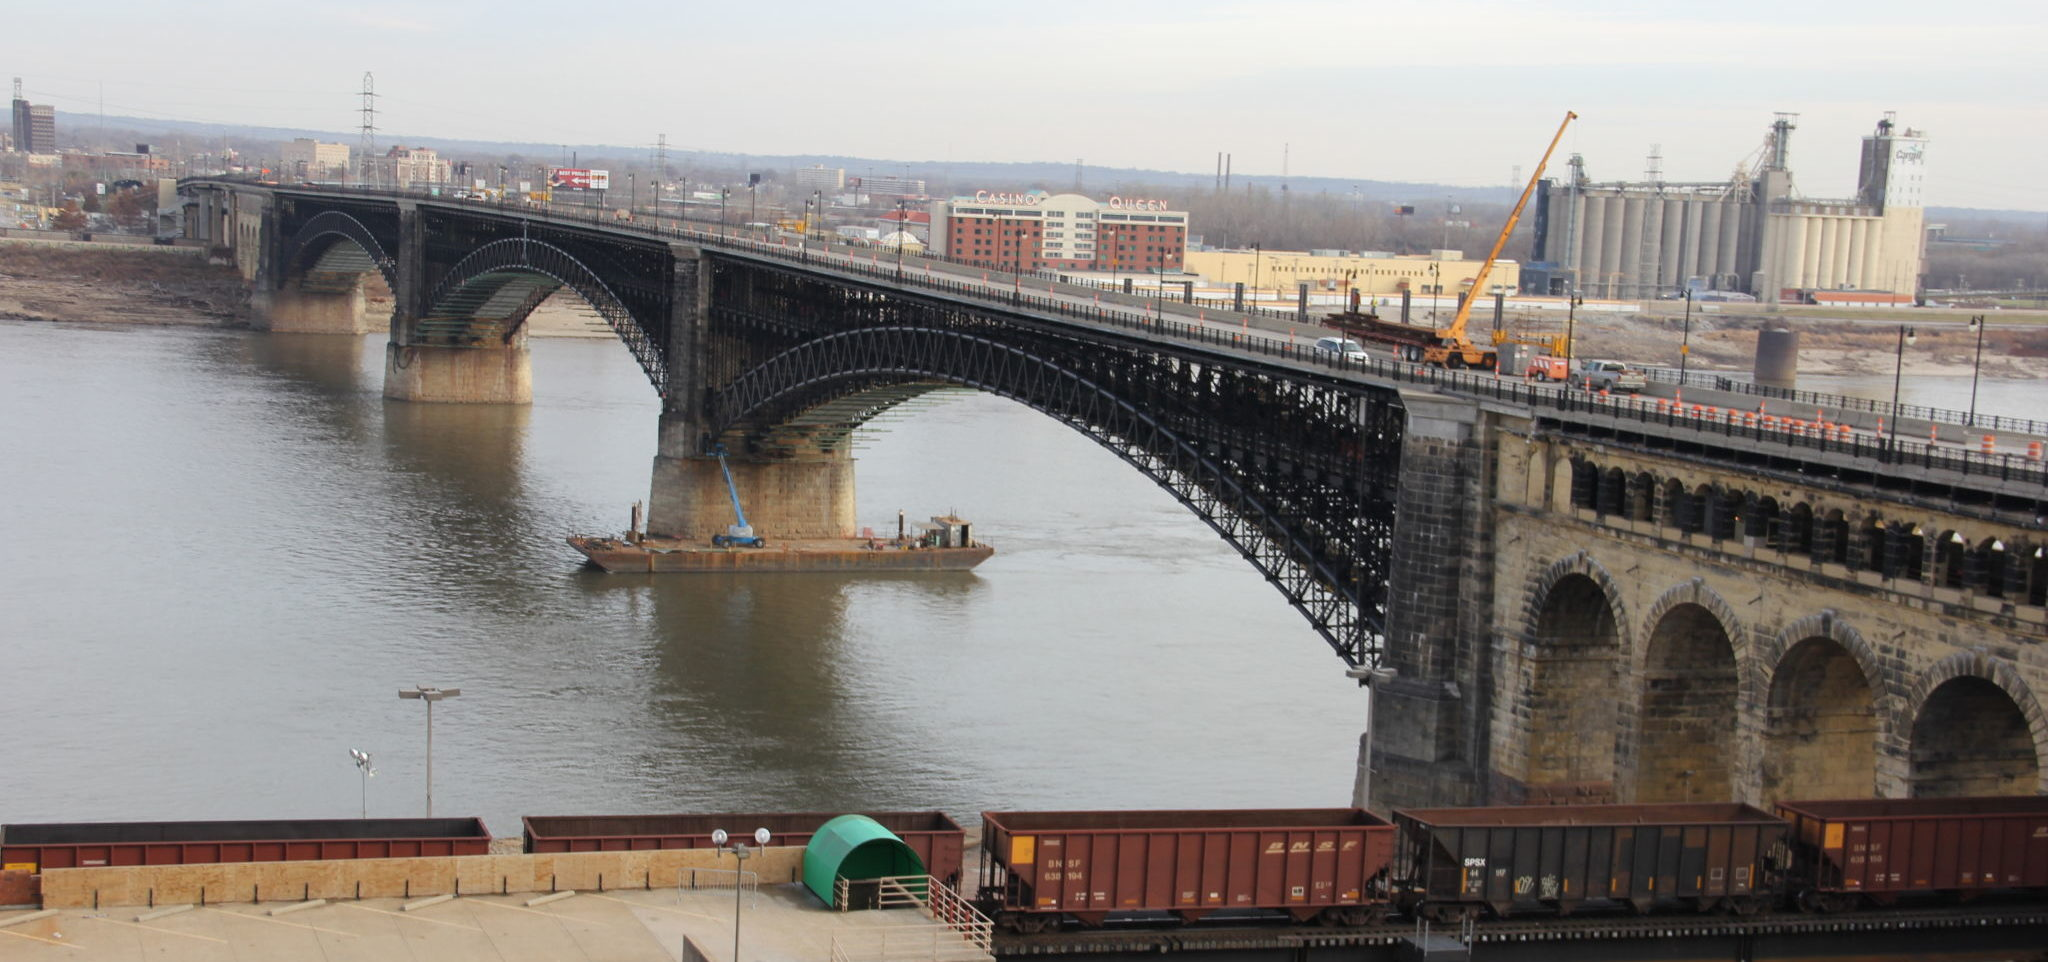 The north side of St. Louis' Eads Bridge after repairs. Photo courtesy Bi-State Development.